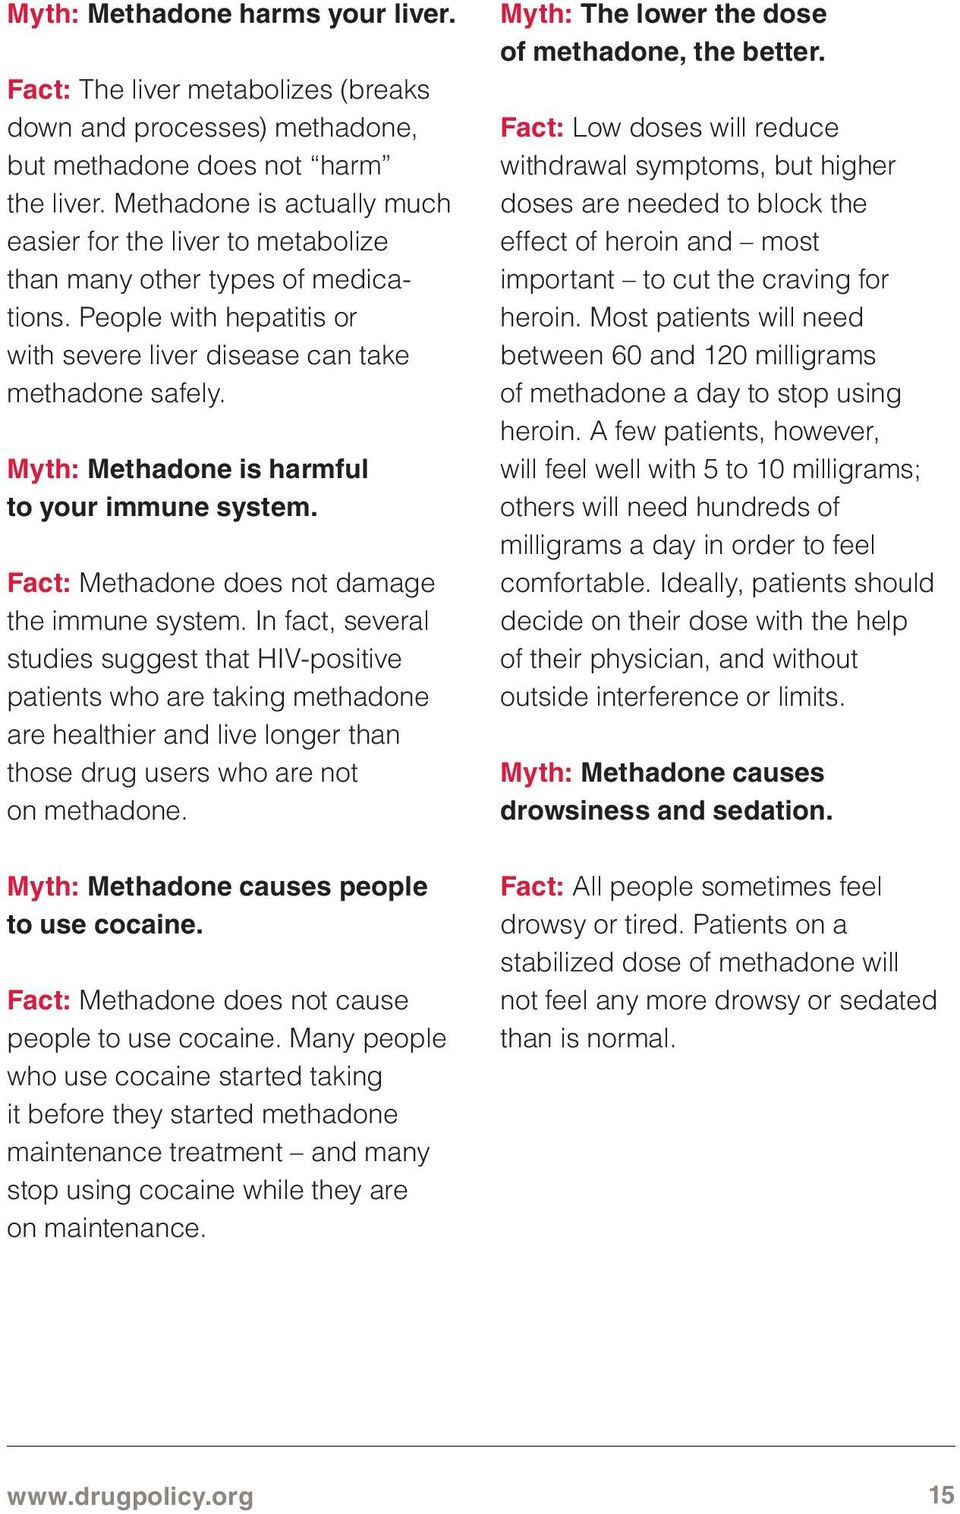 Myth: Methadone is harmful to your immune system. Fact: Methadone does not damage the immune system.